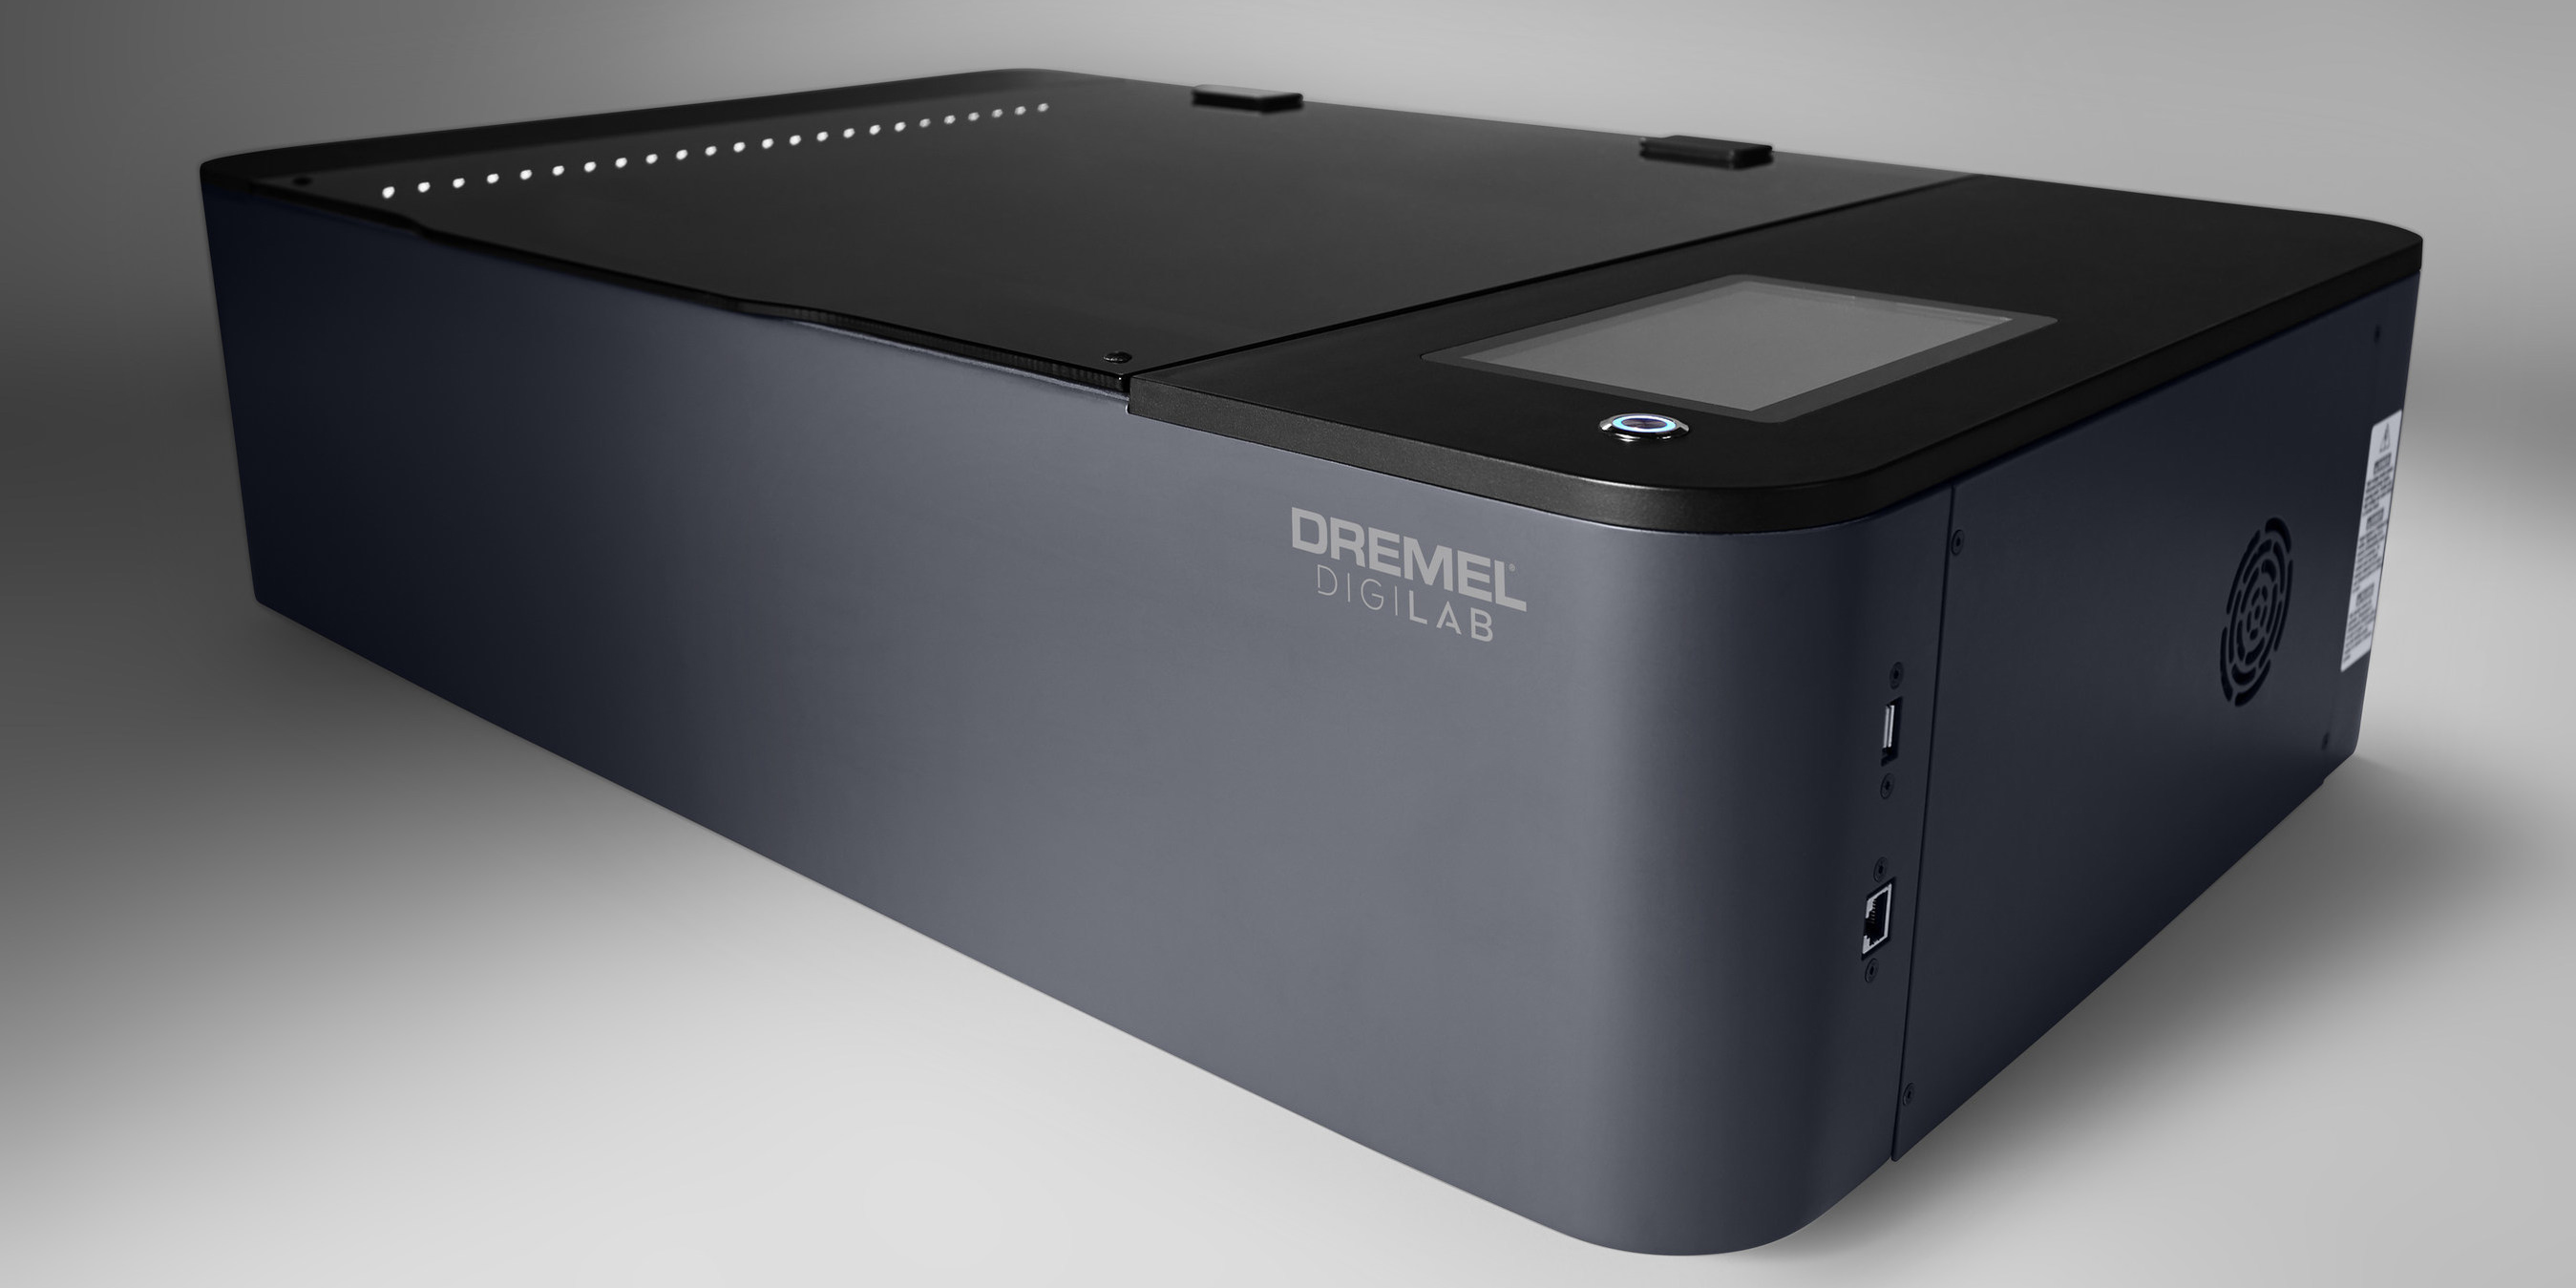 Dremel showcases new DigiLab Laser Cutter that brings precision crafting to makers